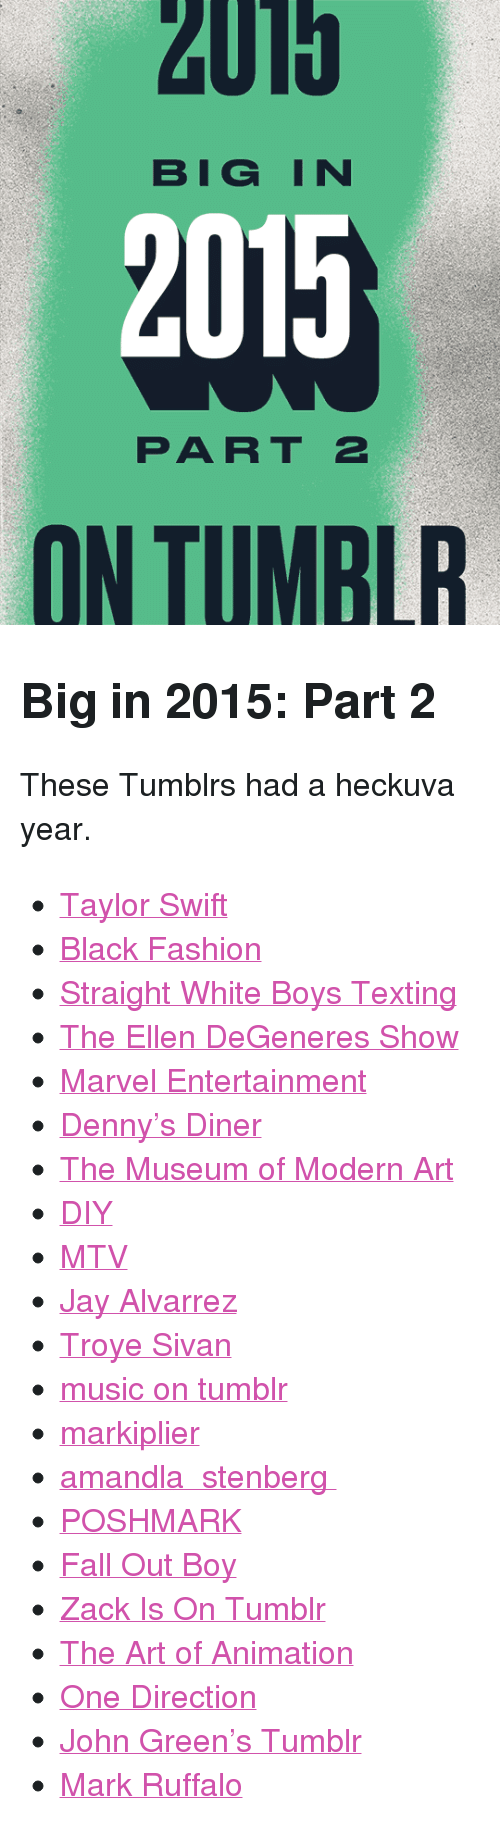 "Denny's, Ellen DeGeneres, and Fall: 2U15  BIGIN  2015  PART 2  ON TUMBLR <h2>Big in 2015: Part 2</h2><p>These Tumblrs had a heckuva year.<br/></p><ul><li><a href=""http://taylorswift.tumblr.com"">Taylor Swift</a></li>  <li><a href=""http://blackfashion.tumblr.com"">Black Fashion</a></li>  <li><a href=""http://straightwhiteboystexting.tumblr.com"">Straight White Boys Texting</a></li>  <li><a href=""http://ellendegeneres.tumblr.com"">The Ellen DeGeneres Show</a></li>  <li><a href=""http://marvelentertainment.tumblr.com"">Marvel Entertainment</a></li>  <li><a href=""http://dennys.tumblr.com"">Denny&rsquo;s Diner</a></li>  <li><a href=""http://moma.tumblr.com"">The Museum of Modern Art</a></li>  <li><a href=""http://diy.tumblr.com"">DIY</a></li>  <li><a href=""http://mtv.tumblr.com"">MTV</a></li>  <li><a href=""http://jayalvarrez.tumblr.com"">Jay Alvarrez</a></li>  <li><a href=""http://troyesivan.tumblr.com"">Troye Sivan</a></li>  <li><a href=""http://music.tumblr.com"">music on tumblr</a></li>  <li><a href=""http://markiplier.tumblr.com"">markiplier</a></li>  <li><a href=""http://amandla.tumblr.com"">amandla ✄ stenberg</a></li>  <li><a href=""http://poshmark.tumblr.com"">POSHMARK</a></li>  <li><a href=""http://falloutboy.tumblr.com"">Fall Out Boy</a></li>  <li><a href=""http://zackisontumblr.tumblr.com"">Zack Is On Tumblr</a></li>  <li><a href=""http://theartofanimation.tumblr.com"">The Art of Animation</a></li>  <li><a href=""http://onedirection.tumblr.com"">One Direction</a></li>  <li><a href=""http://fishingboatproceeds.tumblr.com"">John Green&rsquo;s Tumblr</a></li> <li><a href=""http://markruffalo.tumblr.com"">Mark Ruffalo</a></li></ul>"